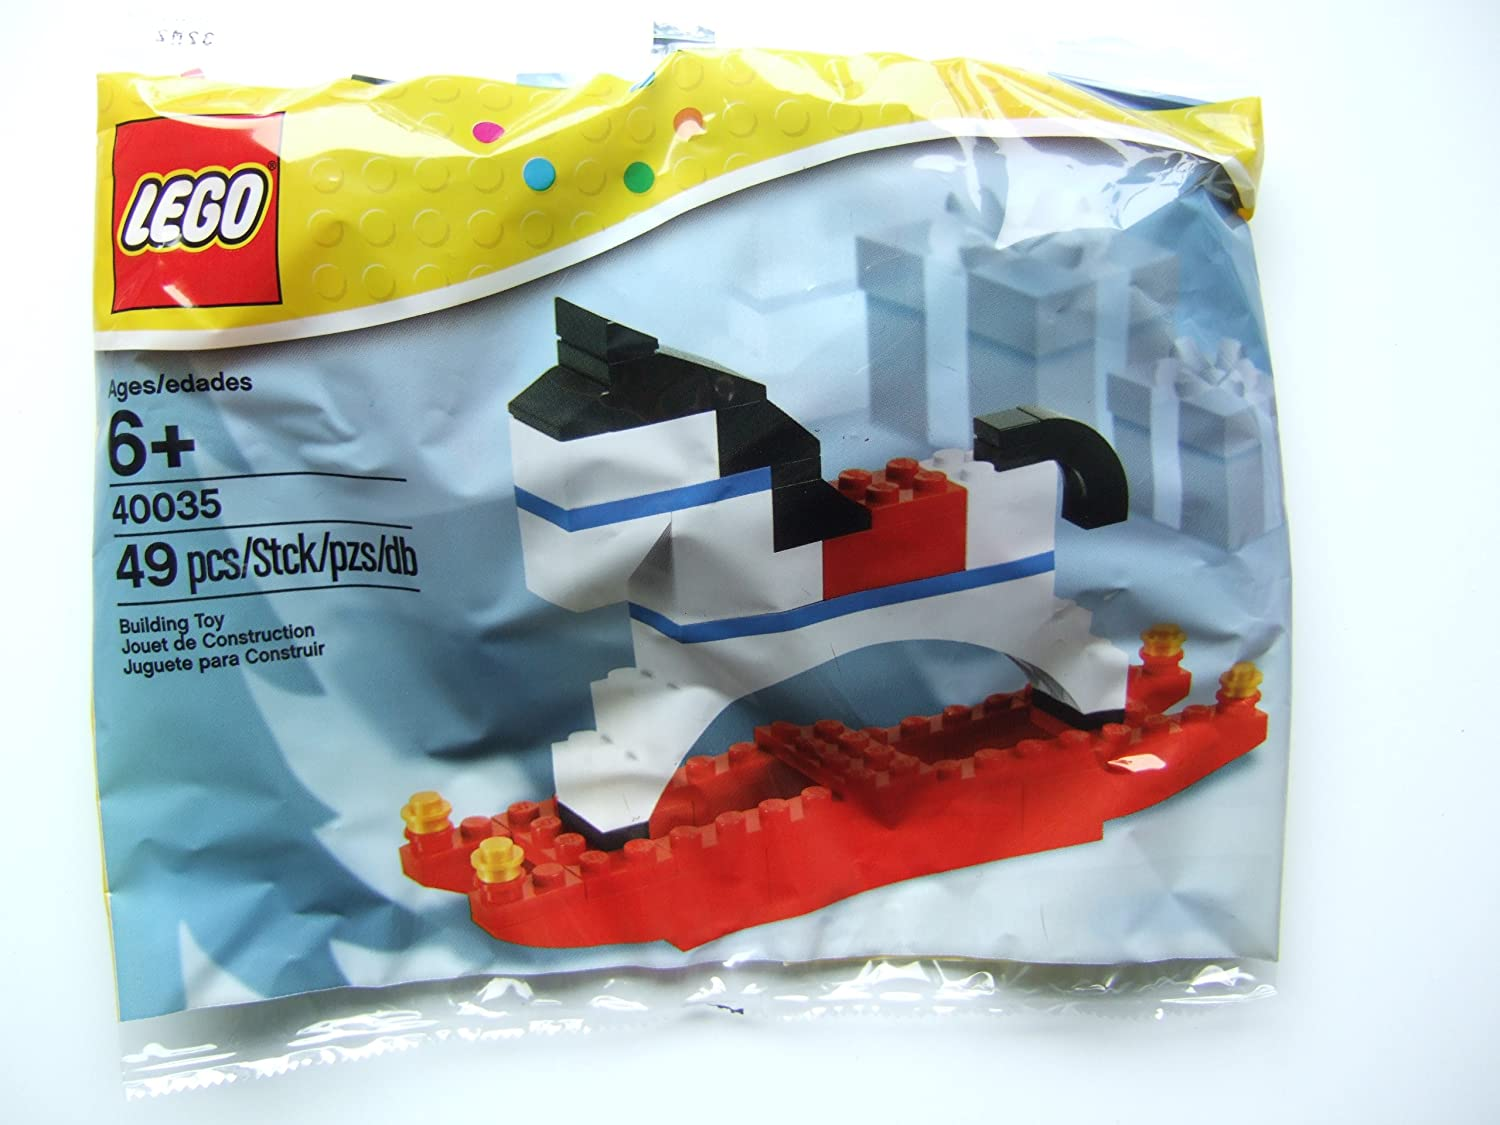 LEGO Christmas Rocking Horse 40035